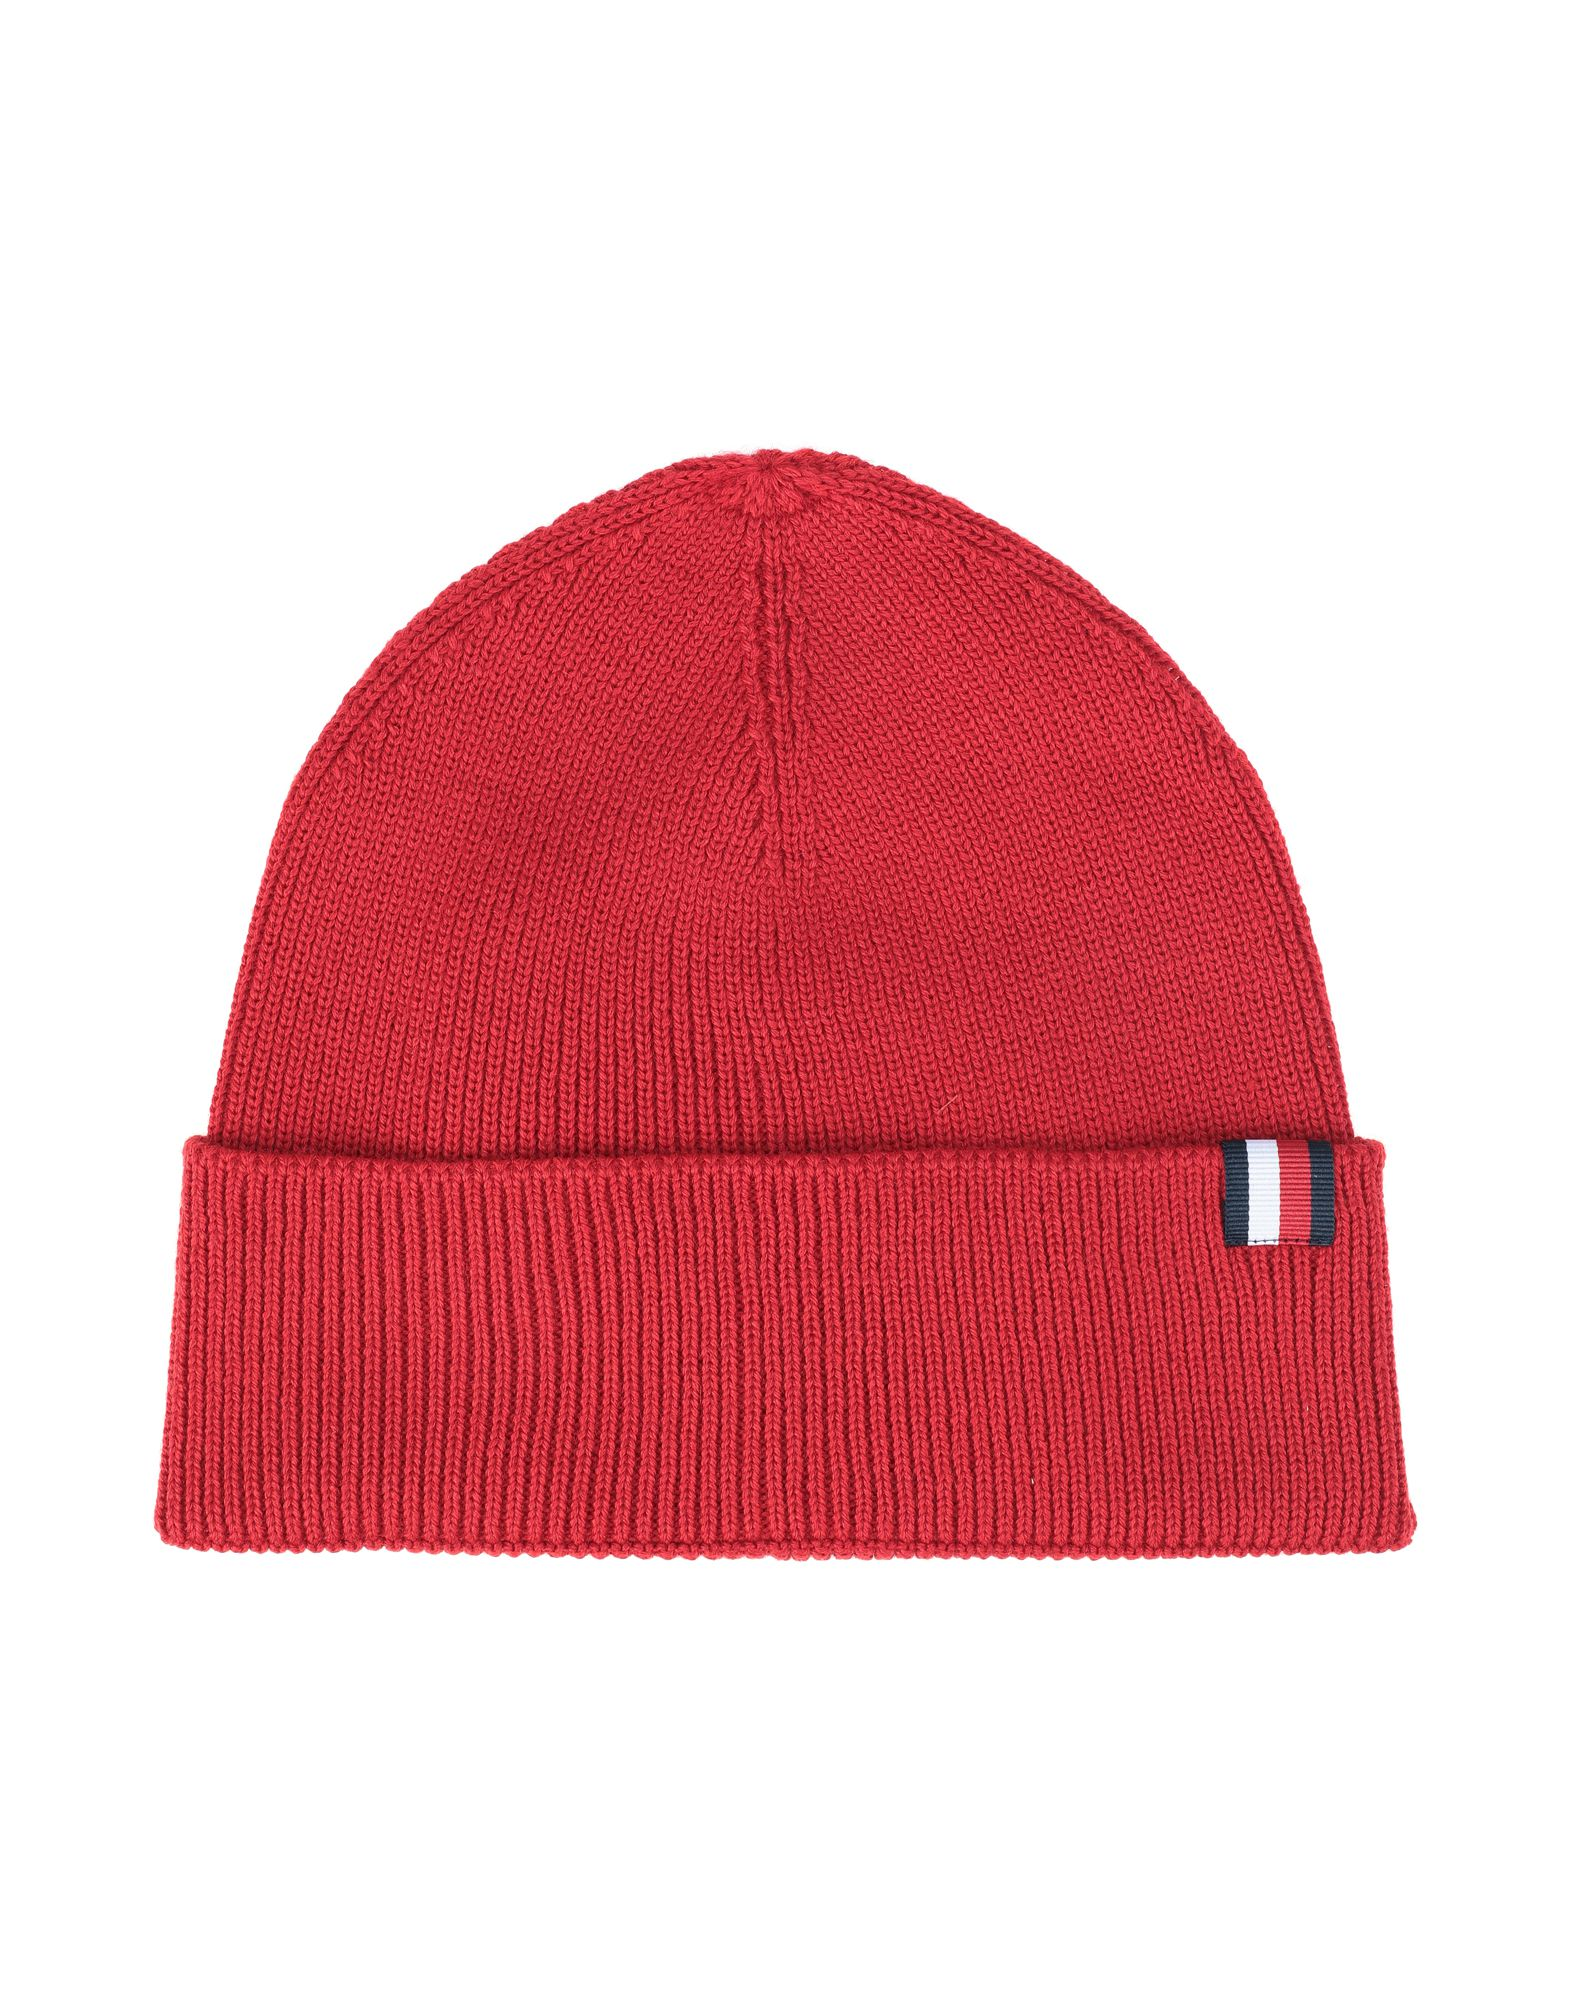 4af8a0a68a7 Tommy Hilfiger New Modern Beanie - Hat - Men Tommy Hilfiger Hats online on  YOOX Finland - 46624091